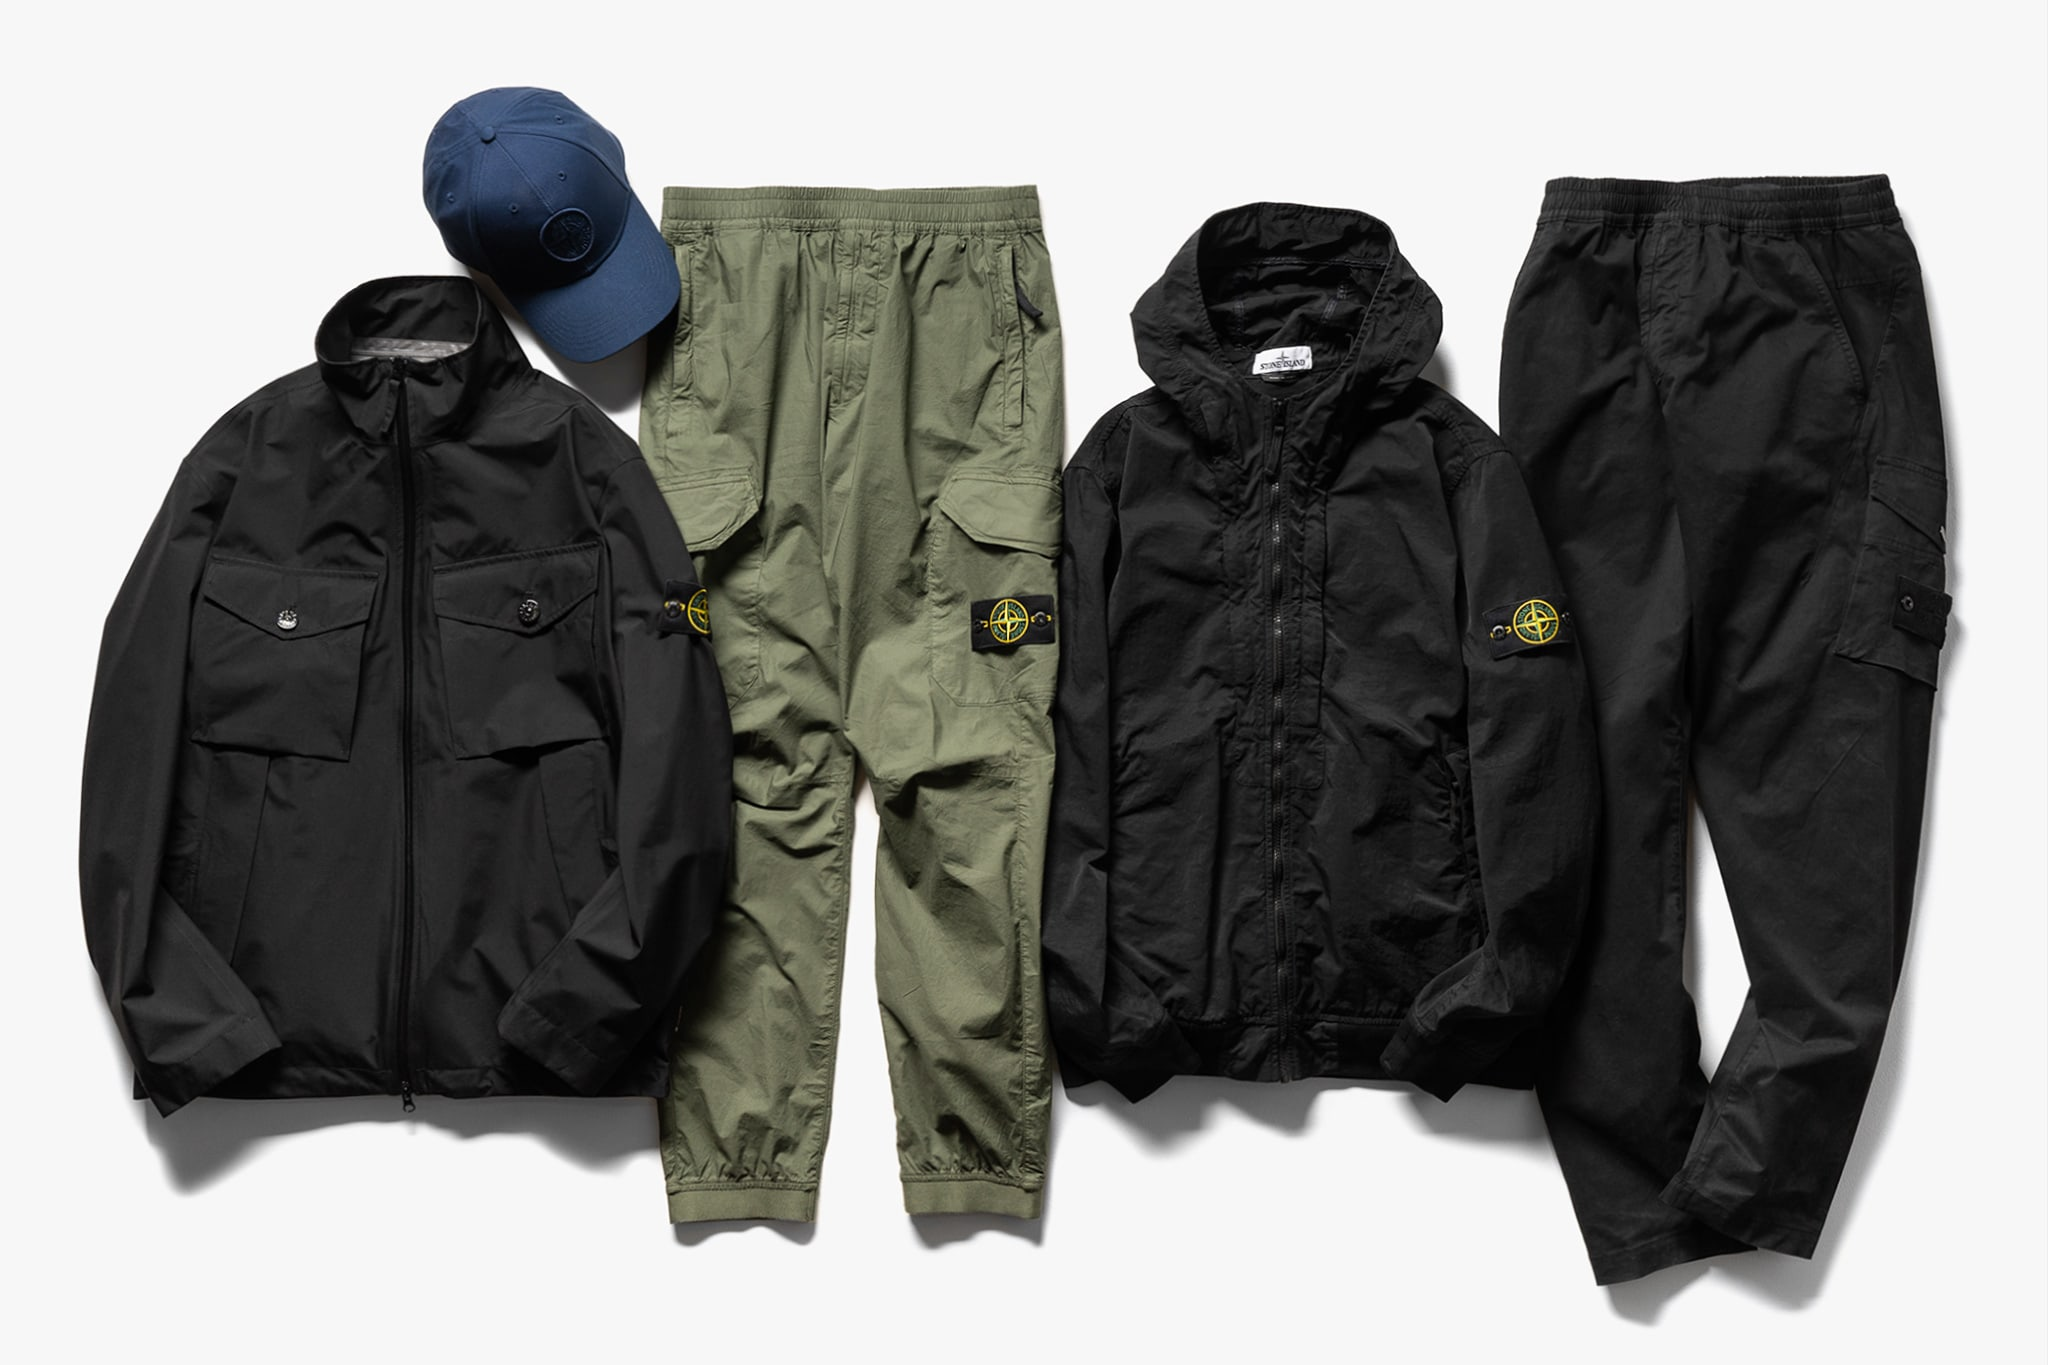 STONE ISLAND SS20 NEW ARRIVALS HAVEN